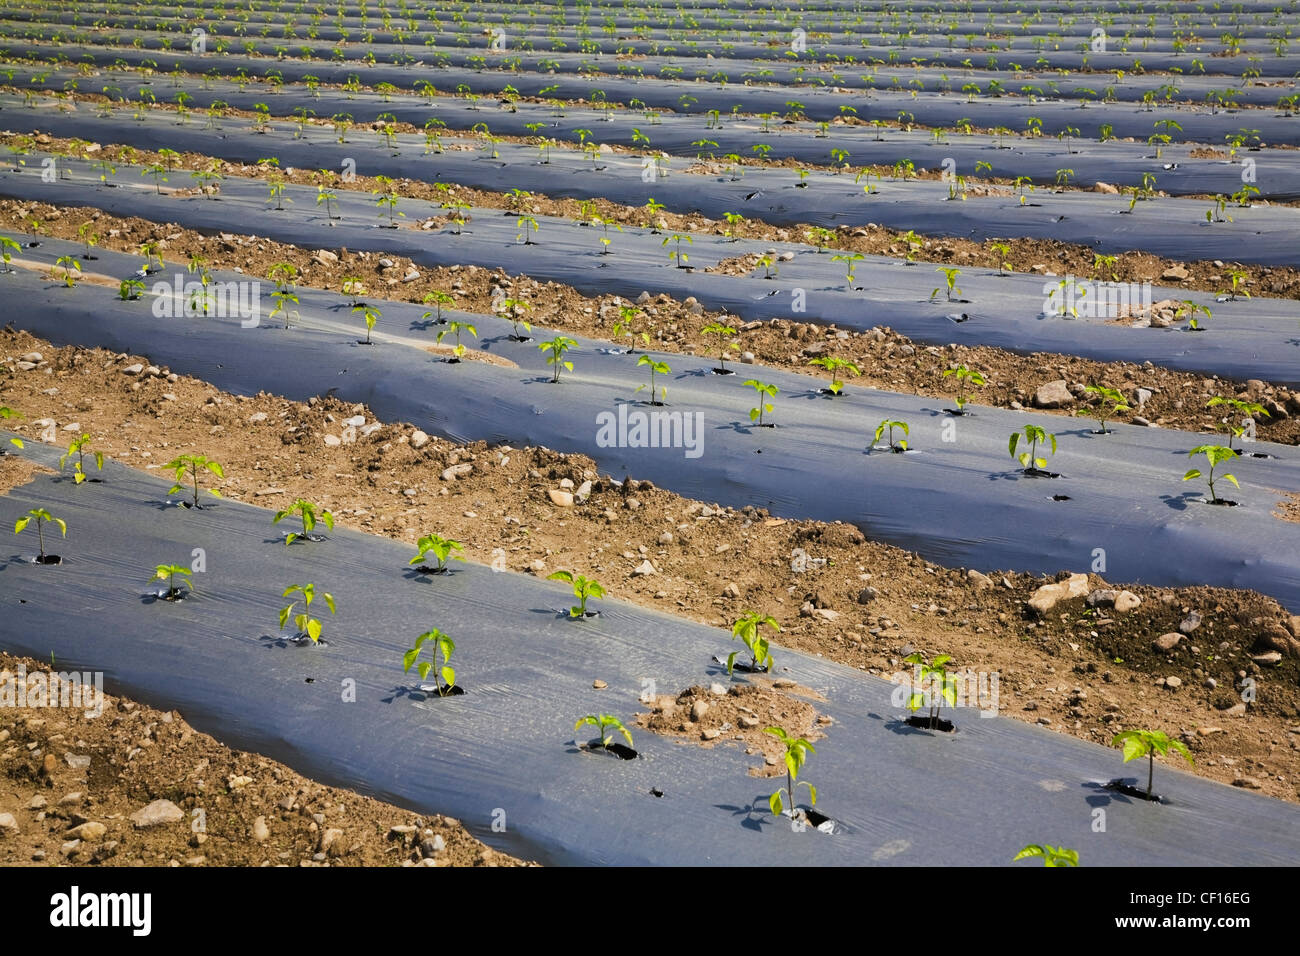 Young Plants Growing Through The Protective Sheeting In An Agricultural Field At Springtime; Quebec Canada - Stock Image